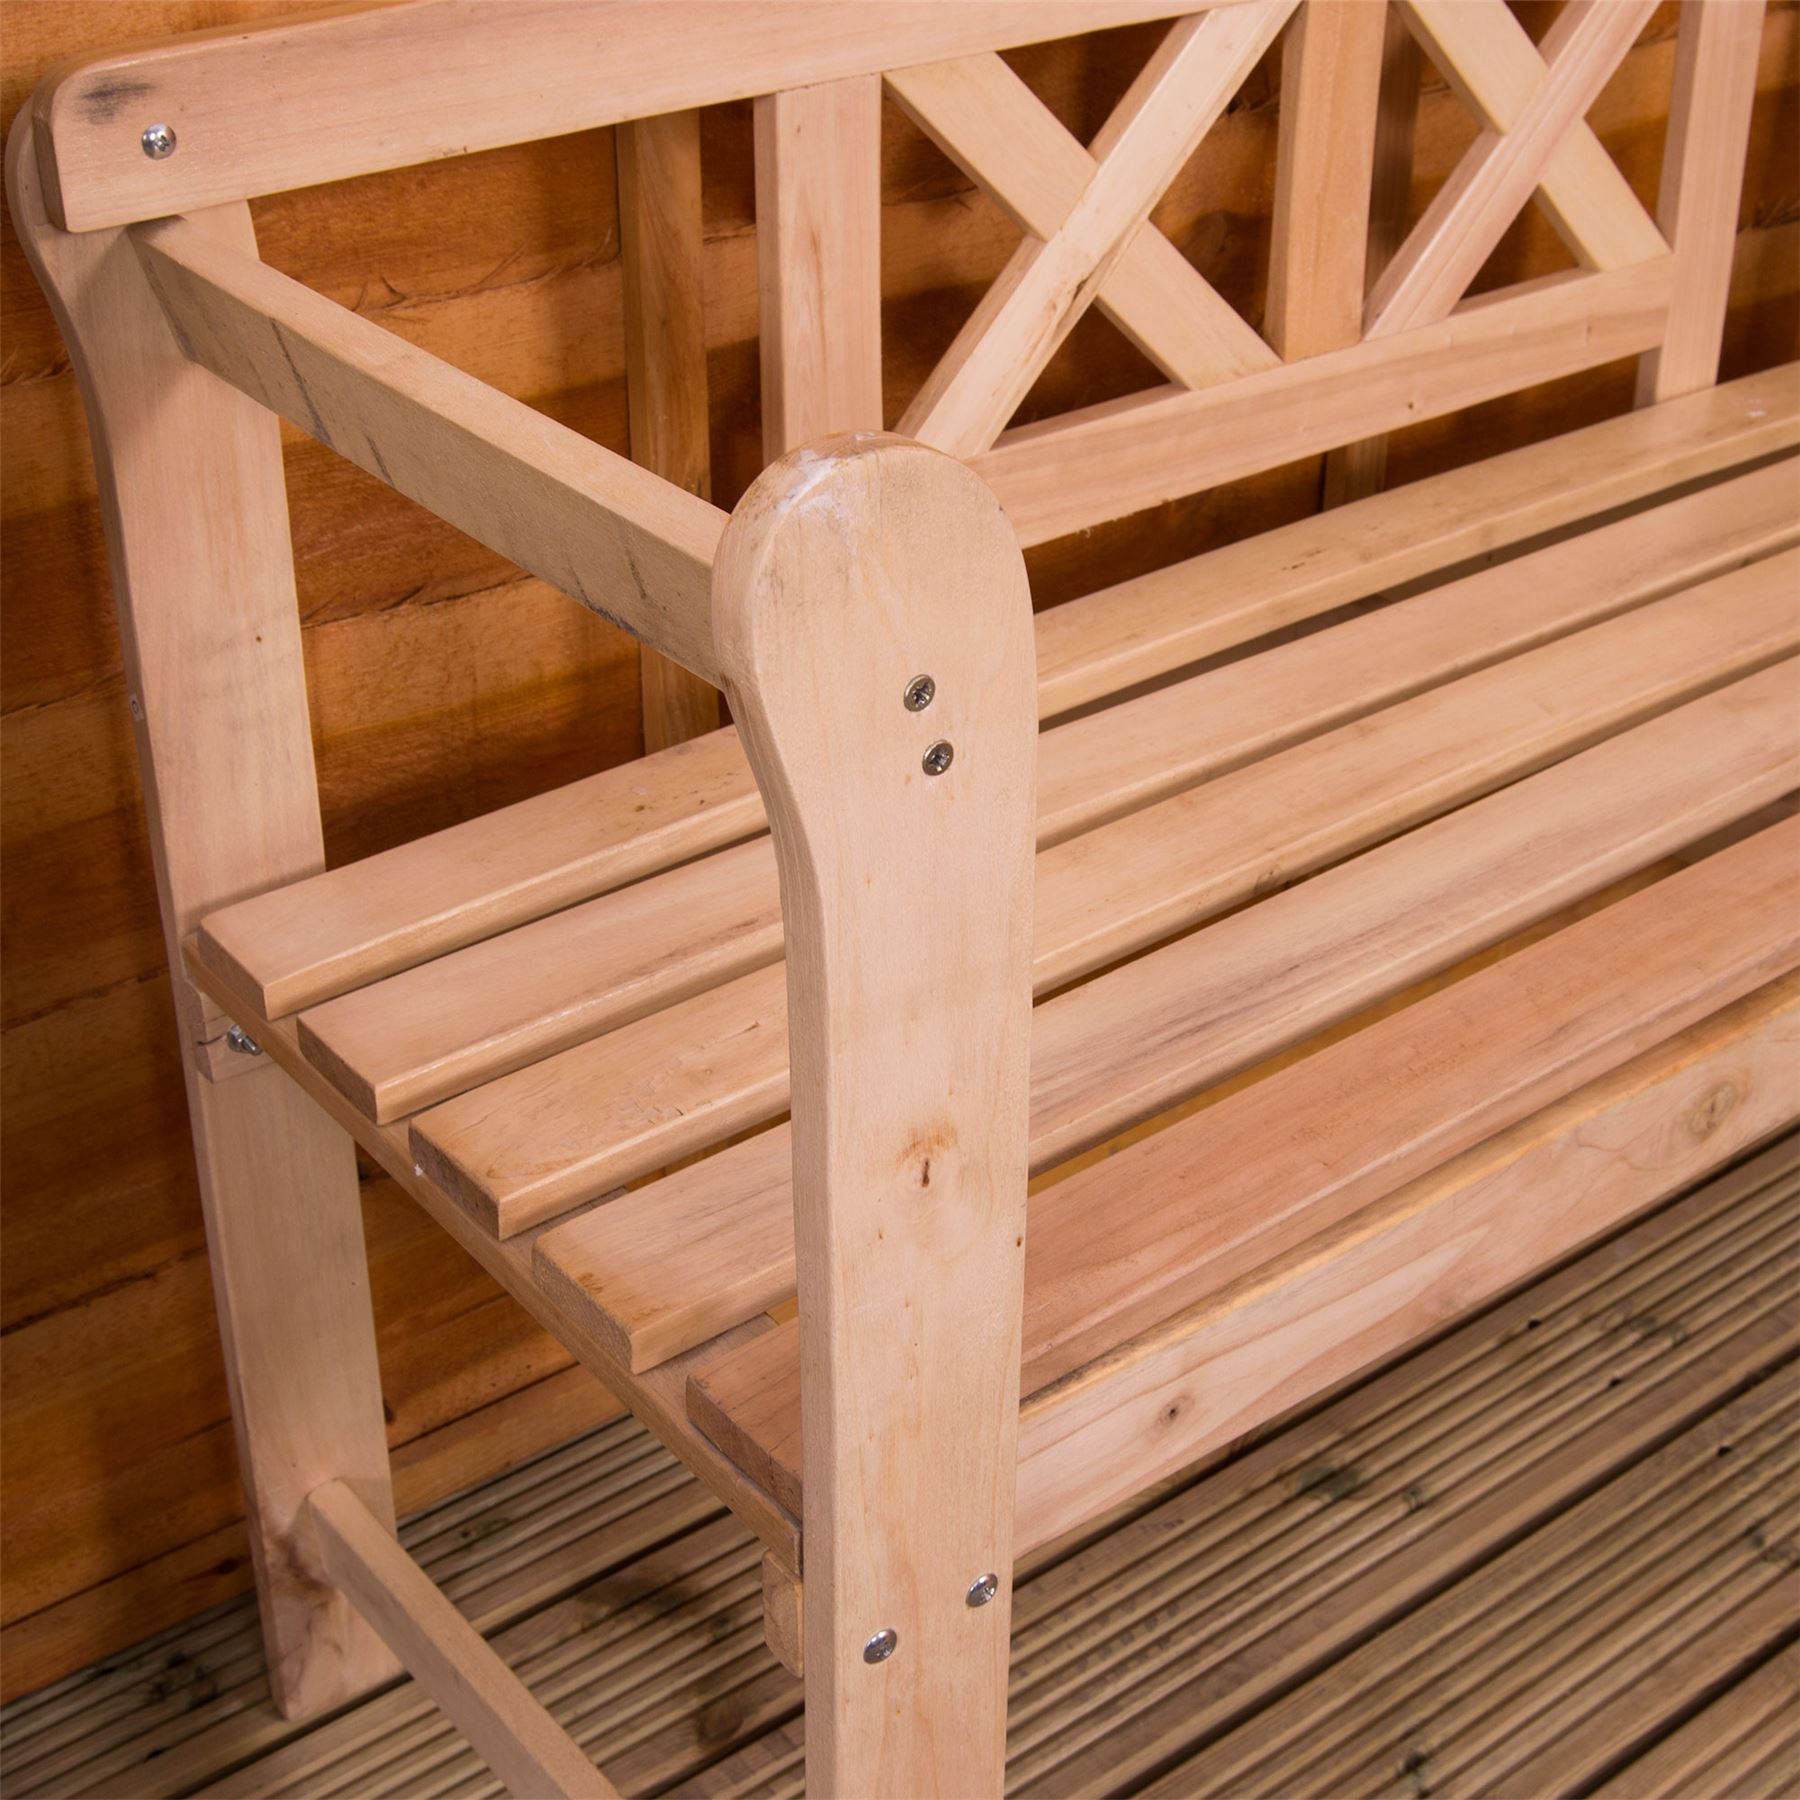 thumbnail 48 - Garden-Bench-Outdoor-Wooden-Metal-Picnic-Seat-Home-Patio-Furniture-Rustic-Iron-3